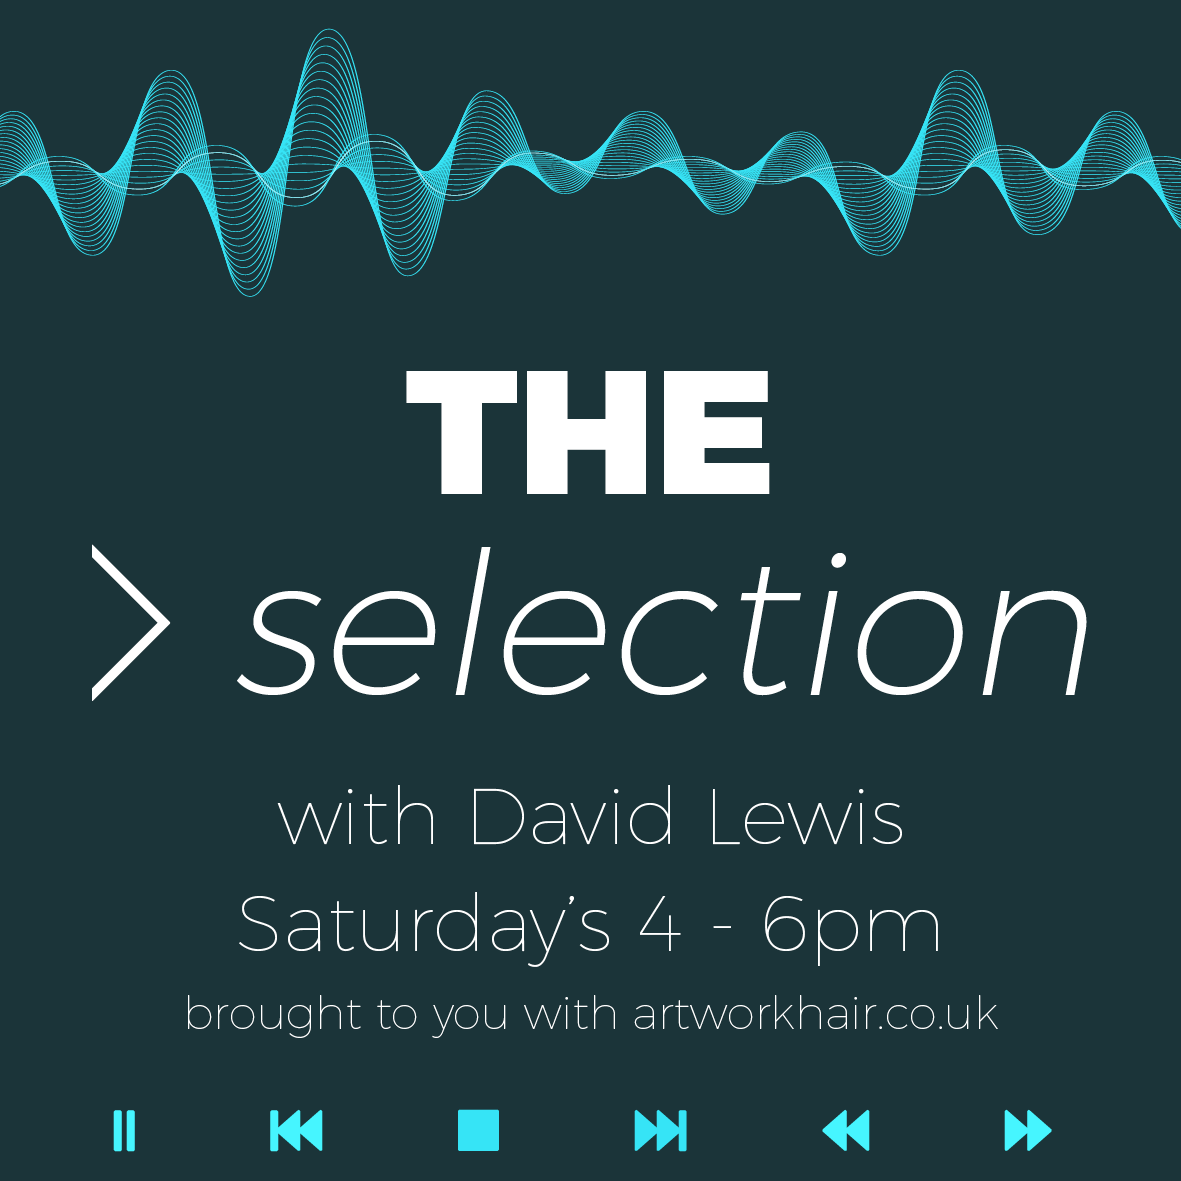 If you are around from 4pm today join me on #TheSelection @solarradio with @ArtworkHair. We've music from the likes of The Jacksons, @ebenet @MusicByKEM @jodywatley @LeelaJames @MicaParisSoul @CorrineBaileyR listen live regional DAB, Solar apps TuneIn onlinepic.twitter.com/wOOskVTe3Q